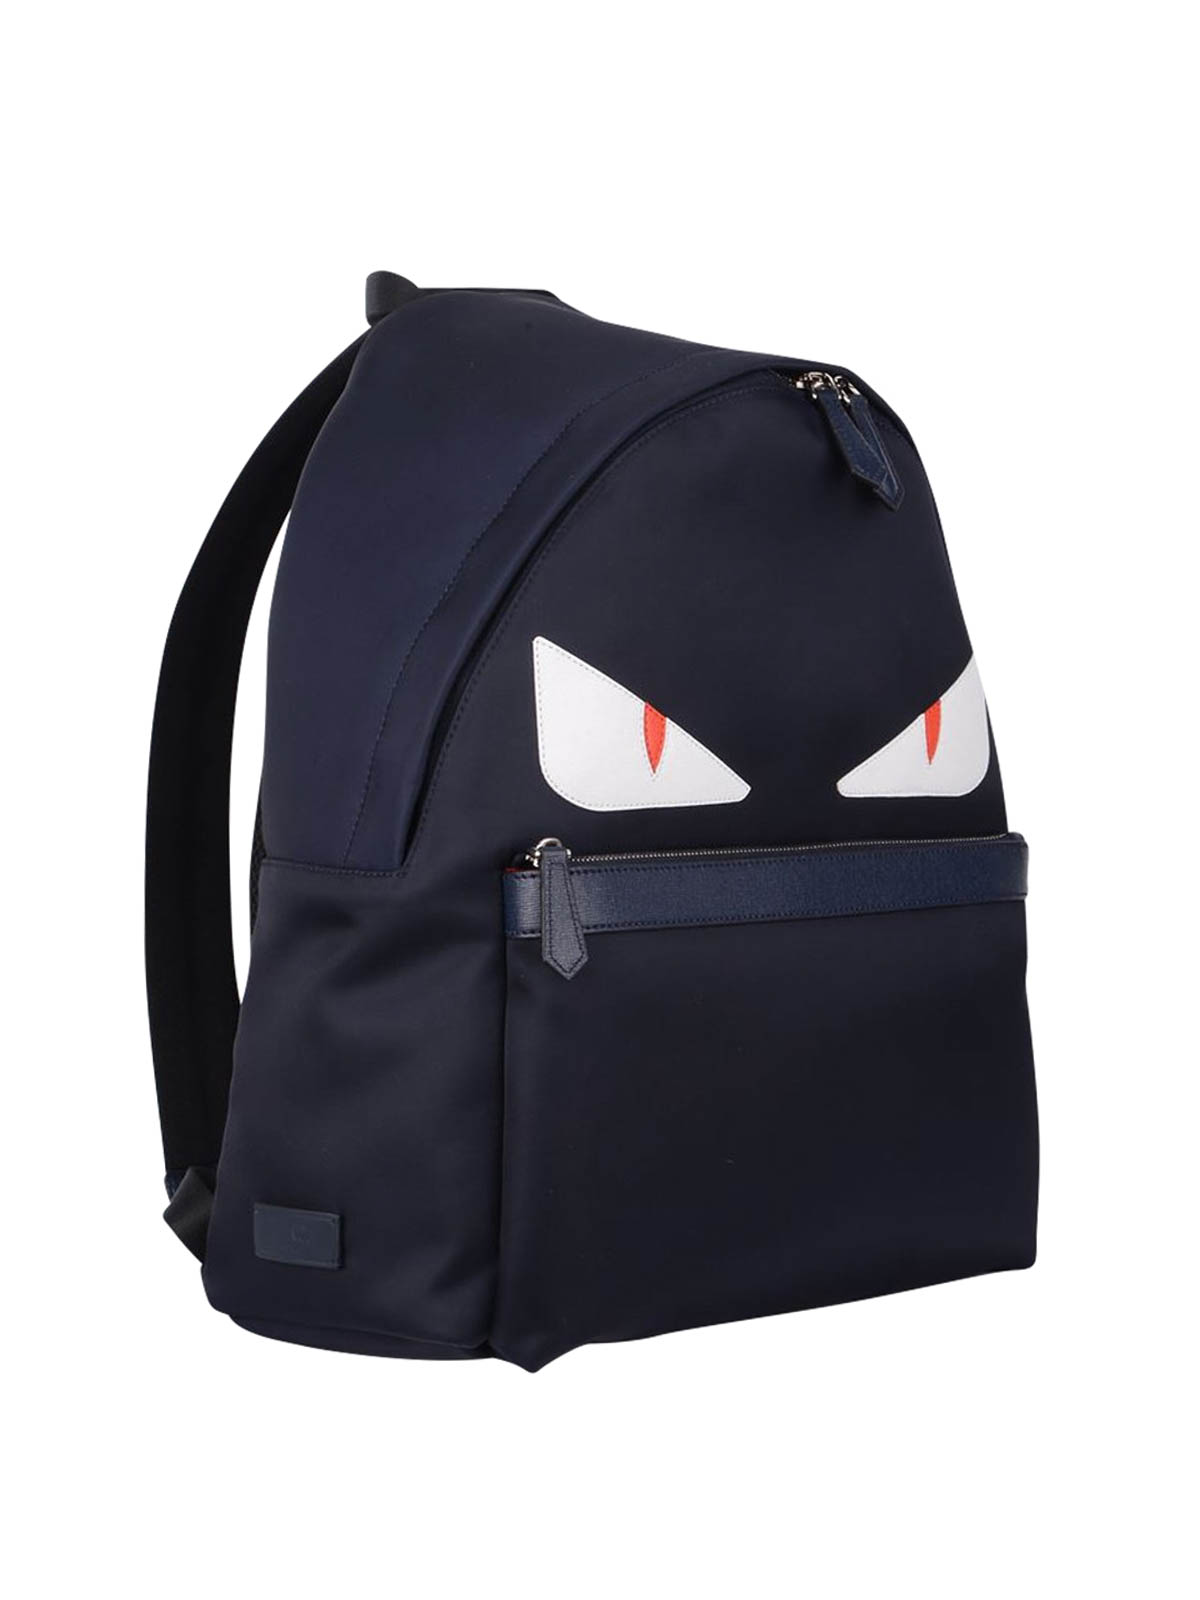 b6b9868f35f3 Fendi - Bag Bug nylon backpack - backpacks - 7VZ012 2WP F0Y7Y ...